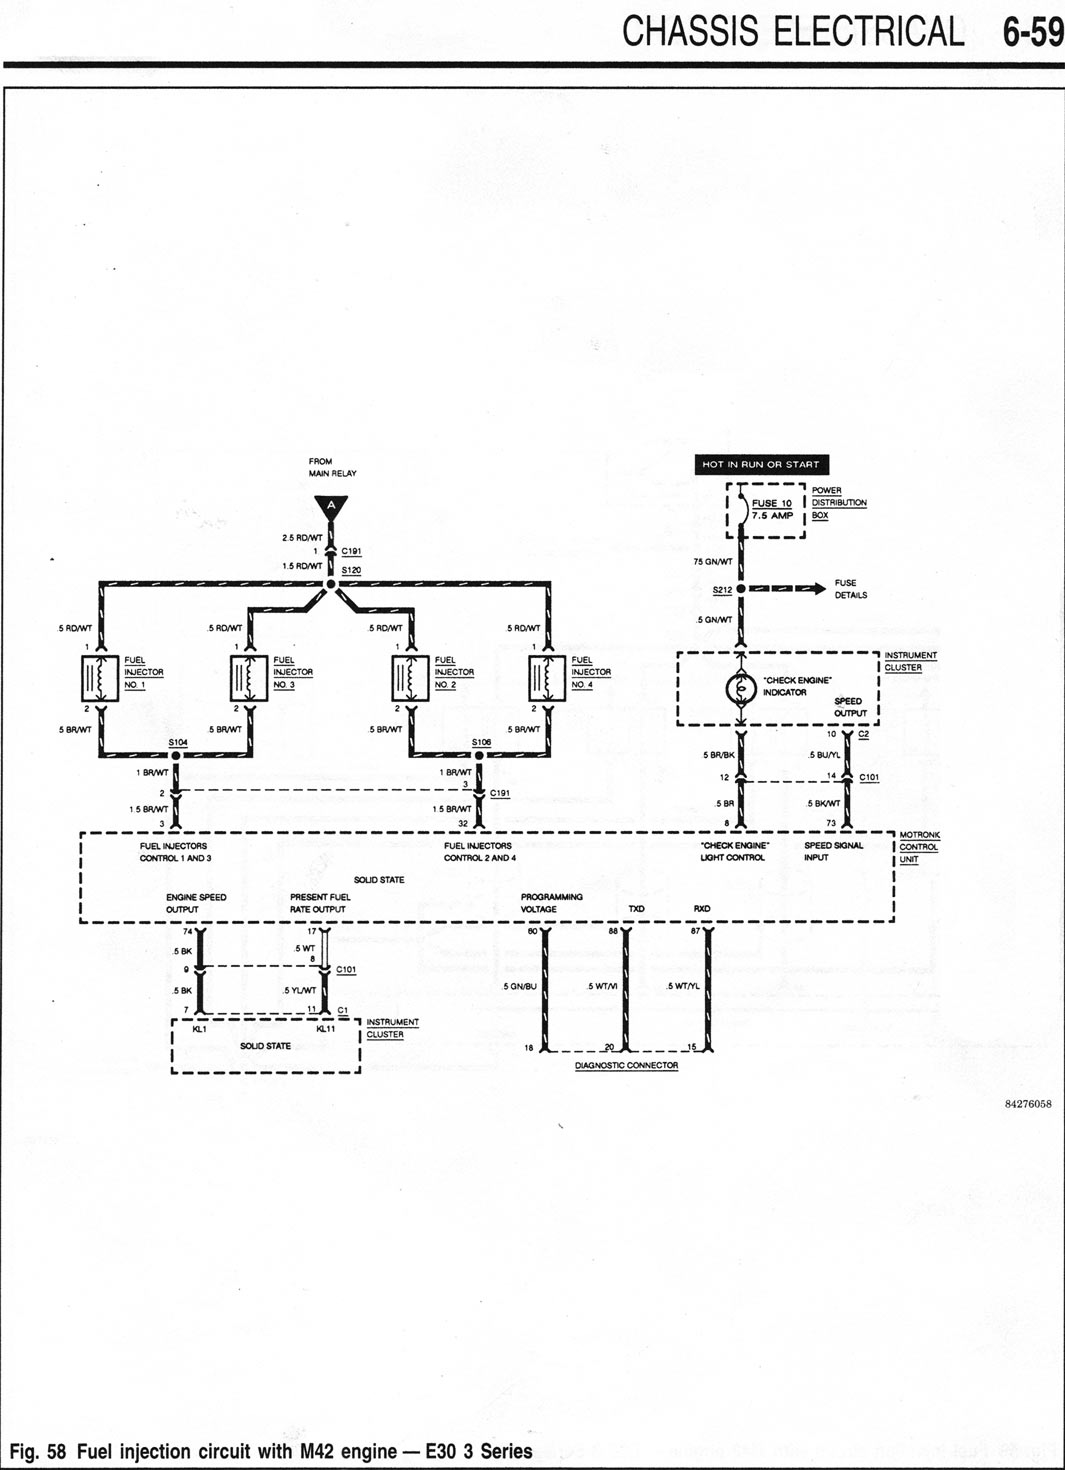 e36 starter wiring diagram delco remy 3 wire alternator bmw m50 diagrams get free image about